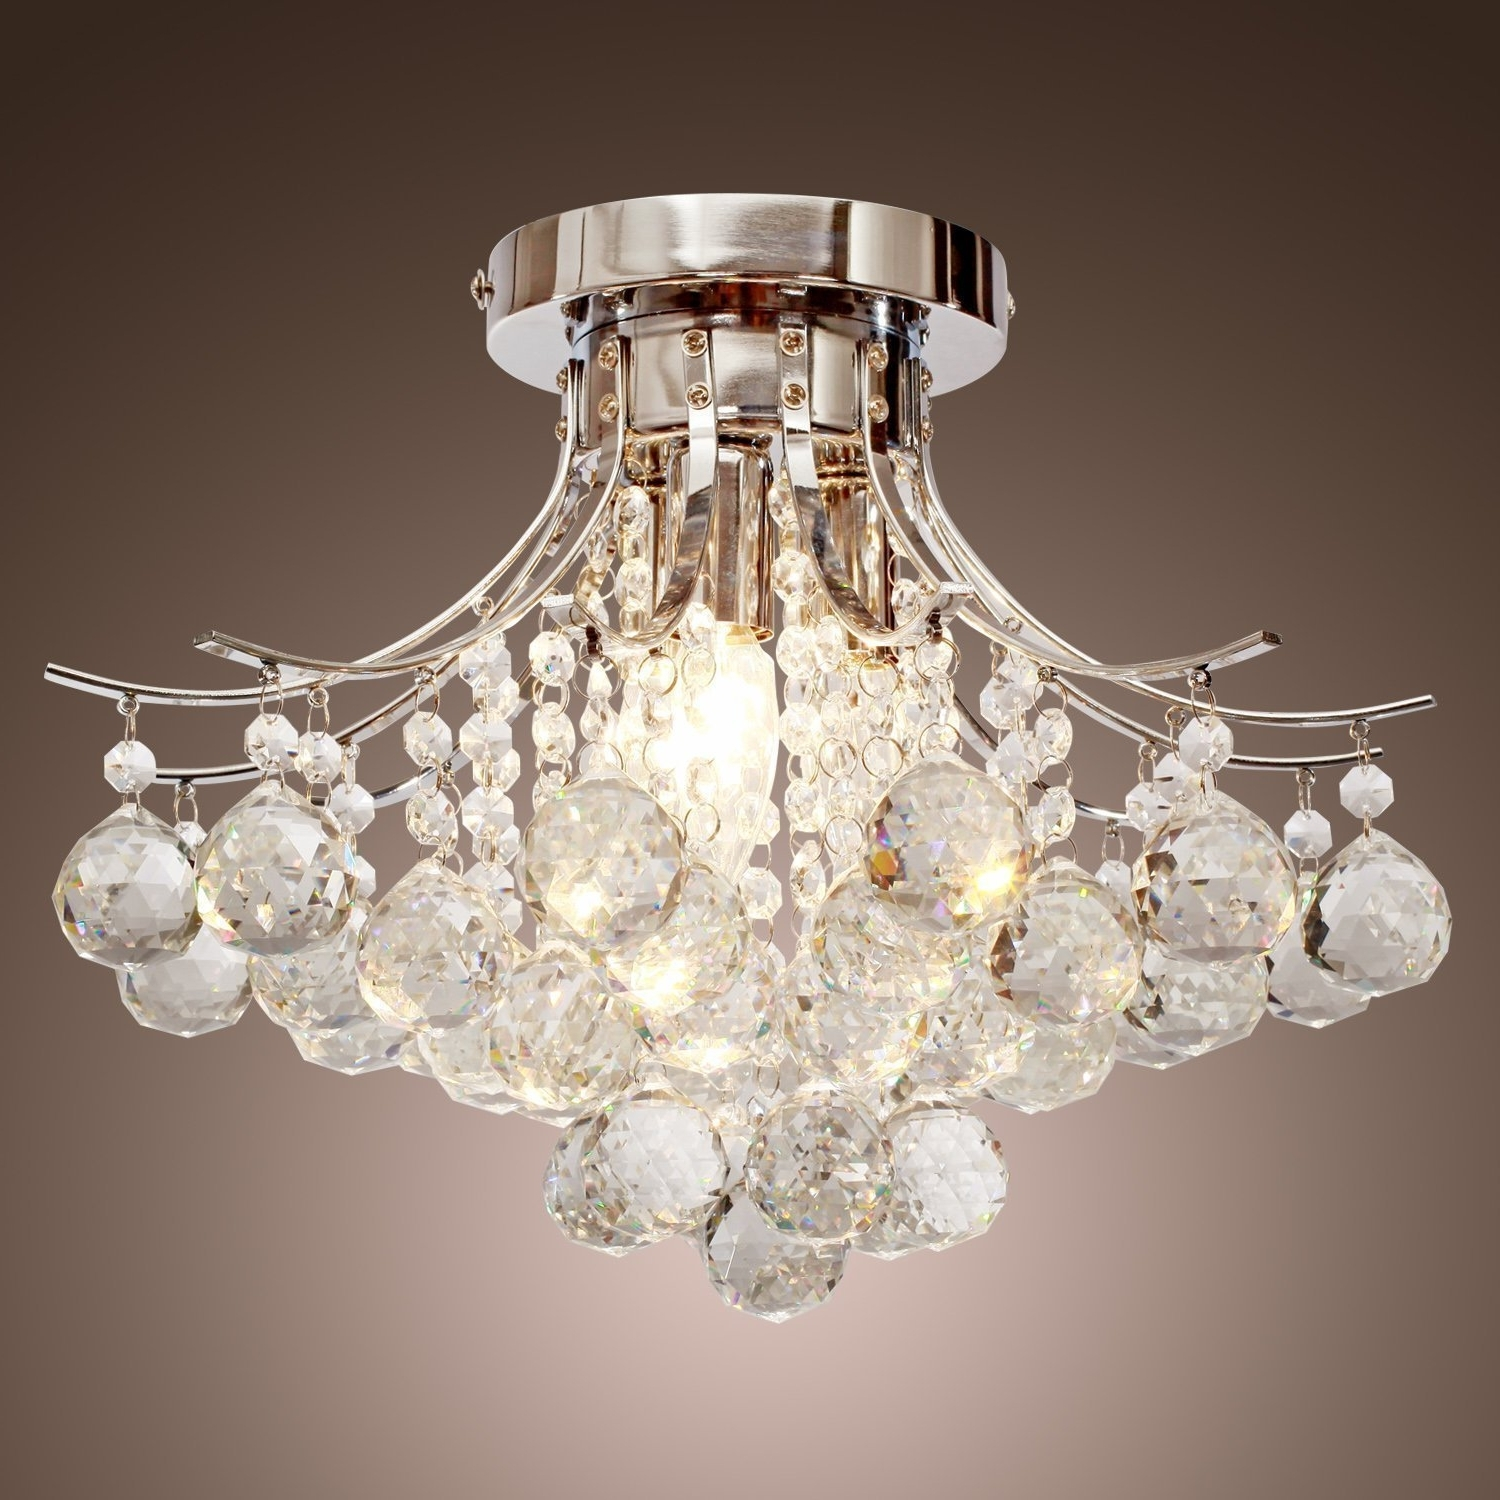 Current Light : Living Room Ceiling Lights Close To Flush Mount Lighting Intended For Low Ceiling Chandelier (View 6 of 15)